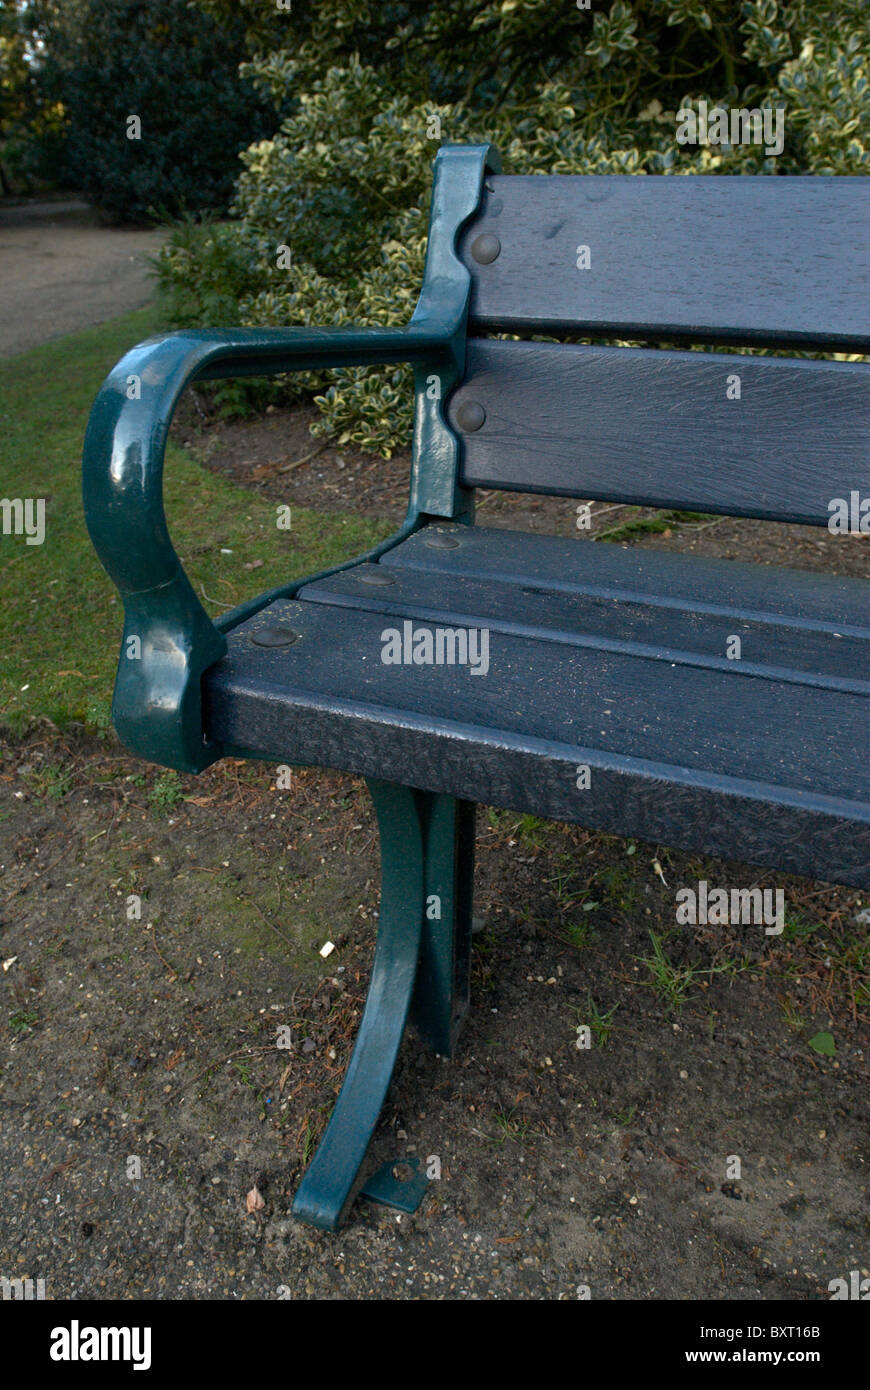 Recycled Plastic Park Bench Stock Photo Alamy